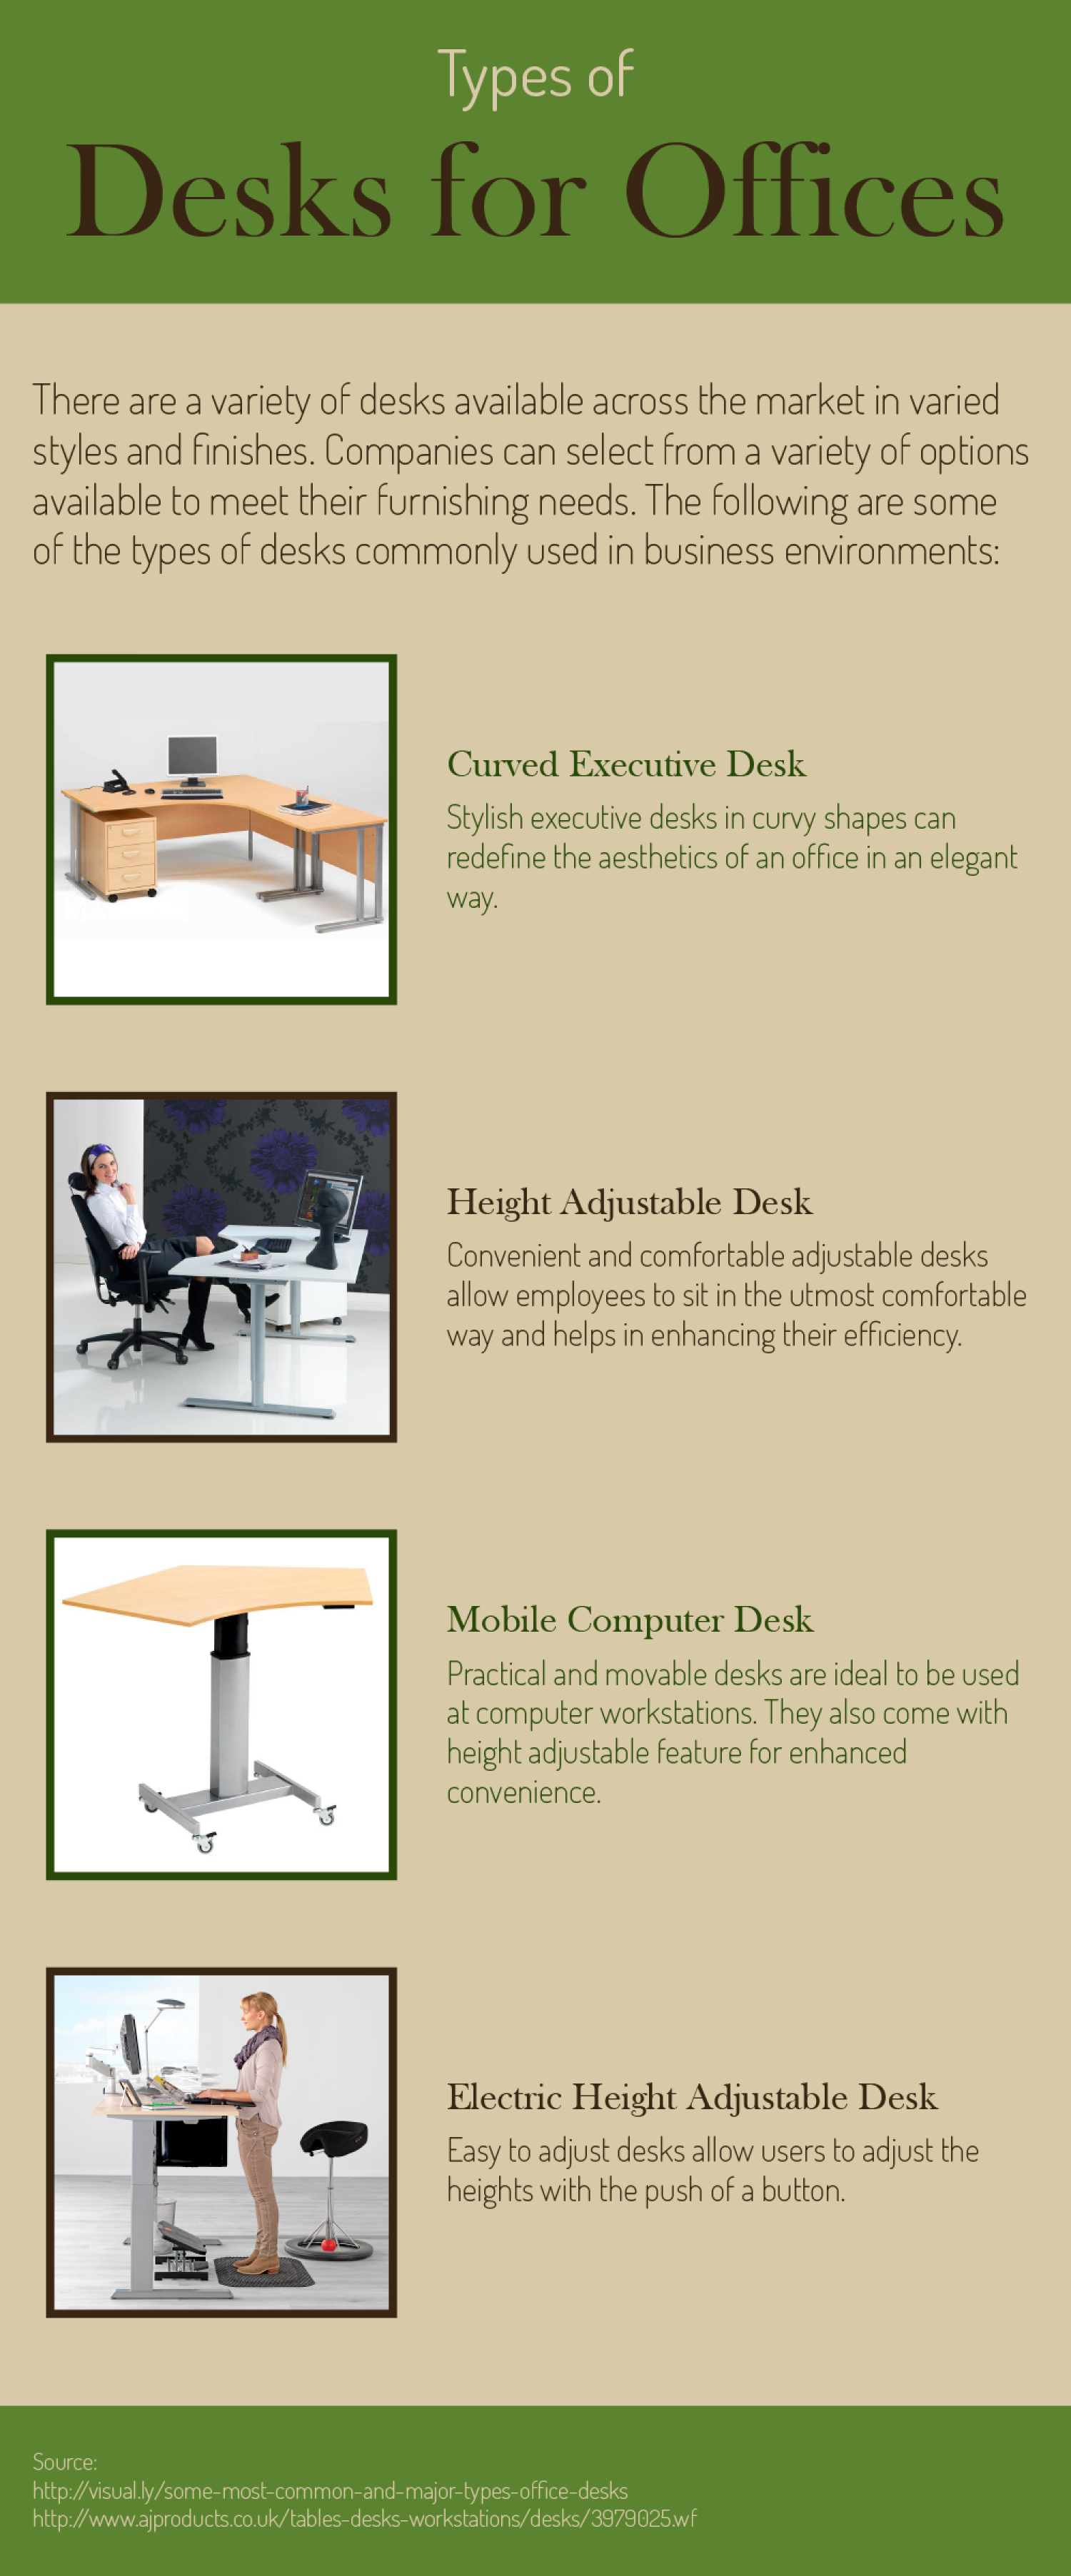 Types Of Desks Amusing Types Of Desks For Offices  Visual.ly Inspiration